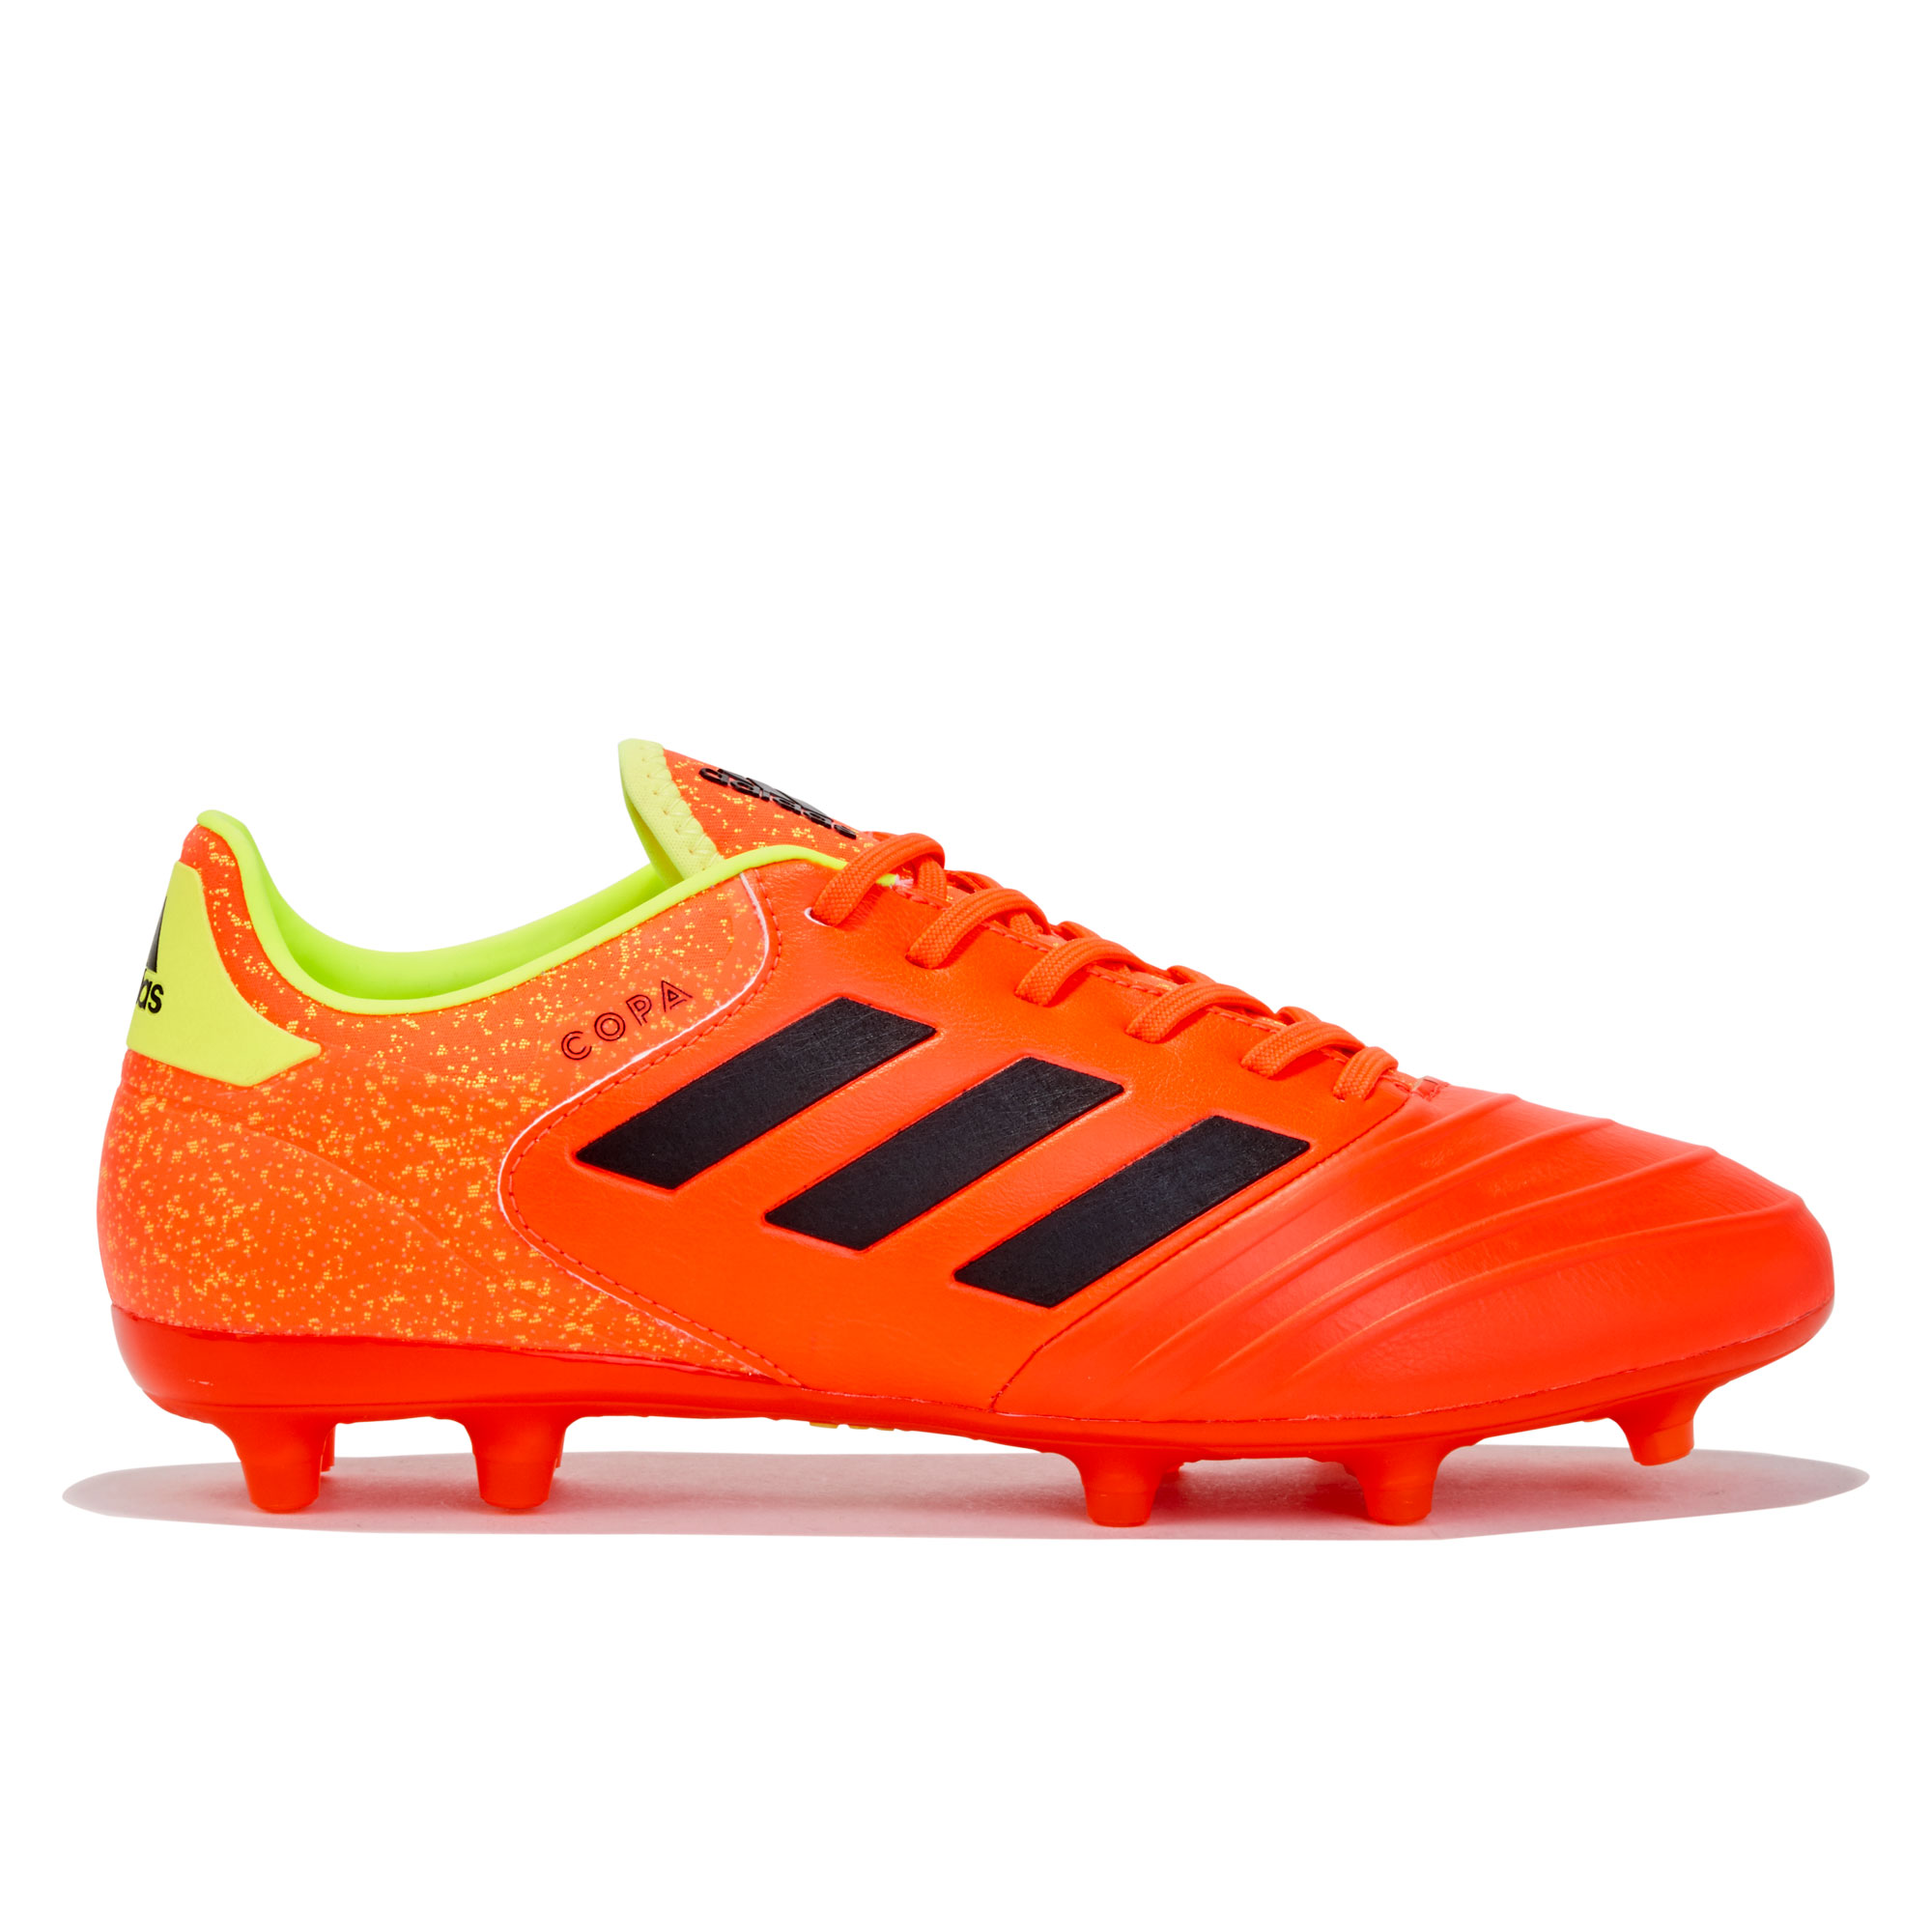 Image of adidas Copa 18.2 Firm Ground Football Boots - Red